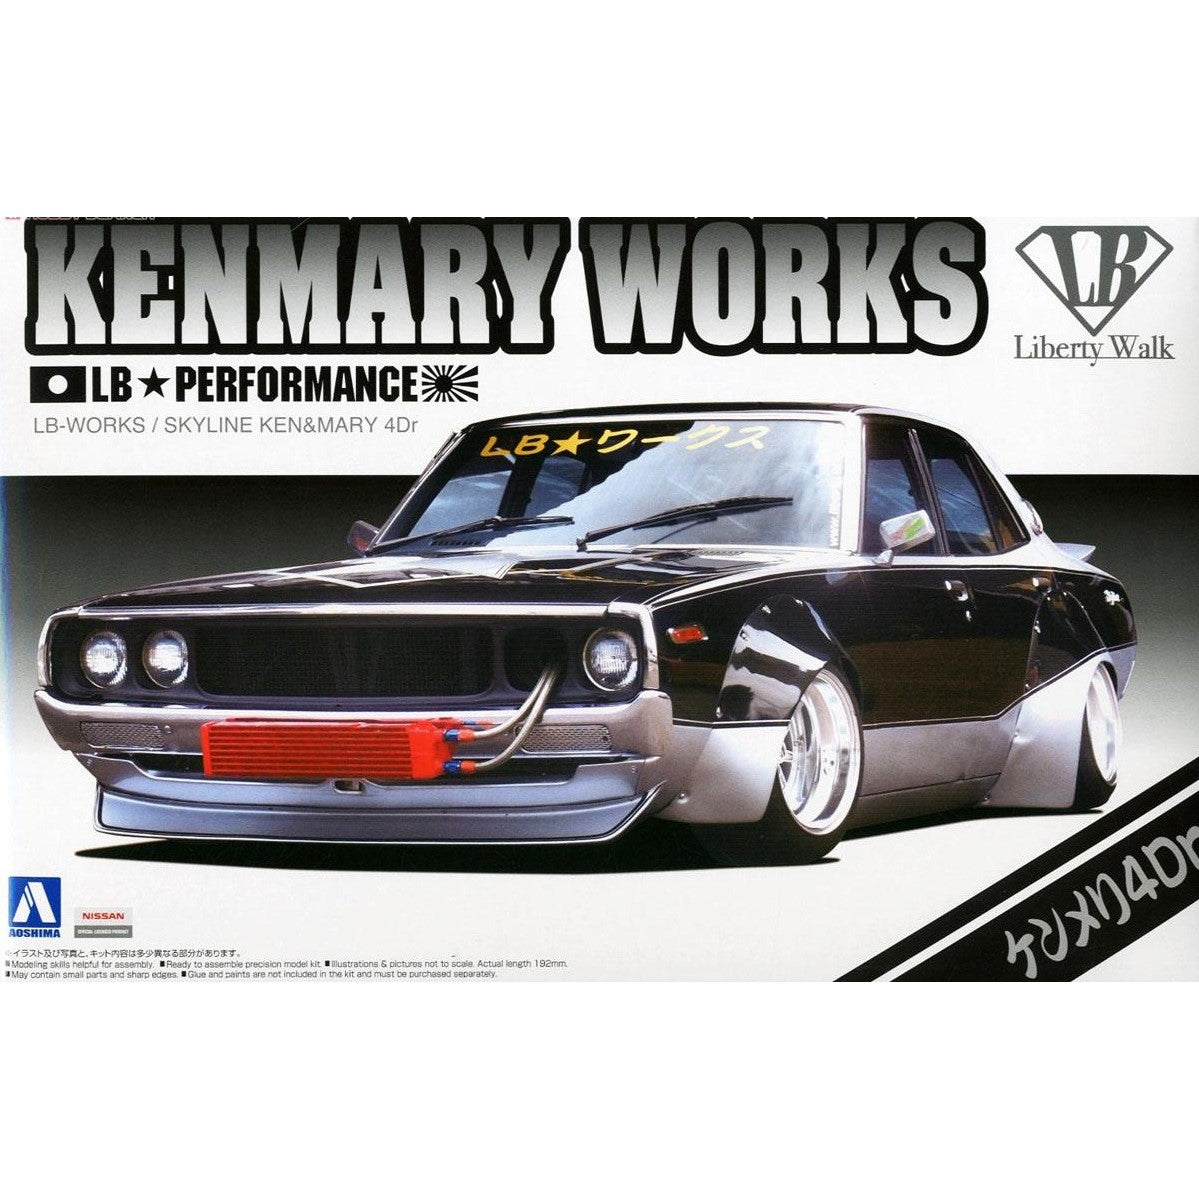 Aoshima 1/24 Nissan Skyline 4Dr Liberty Walk Japan Works 00980